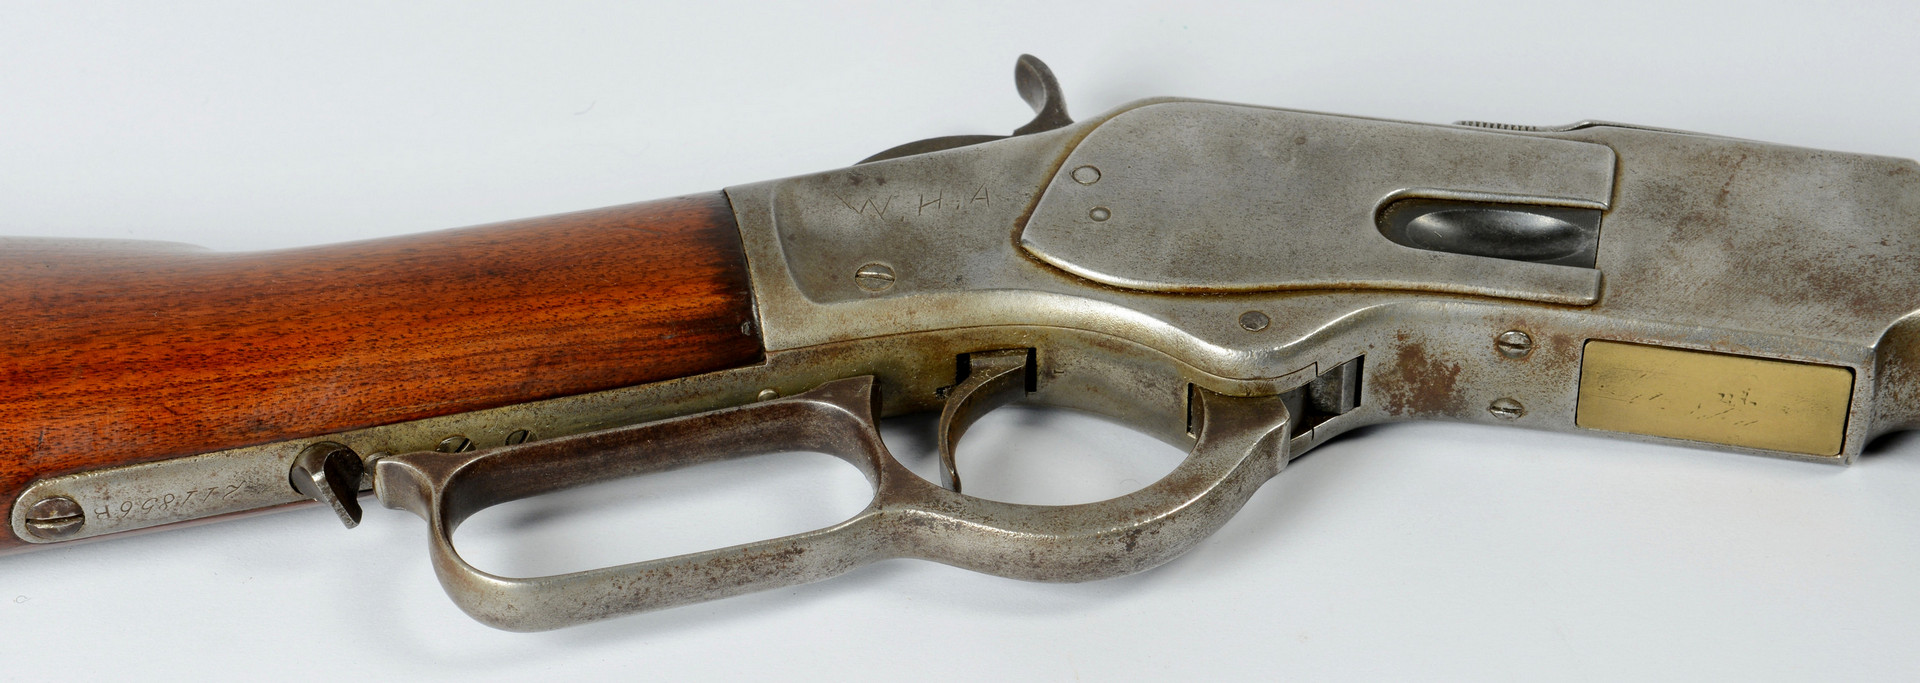 Lot 414: 1873 Winchester Rifle, .32 Cal, nickel finish